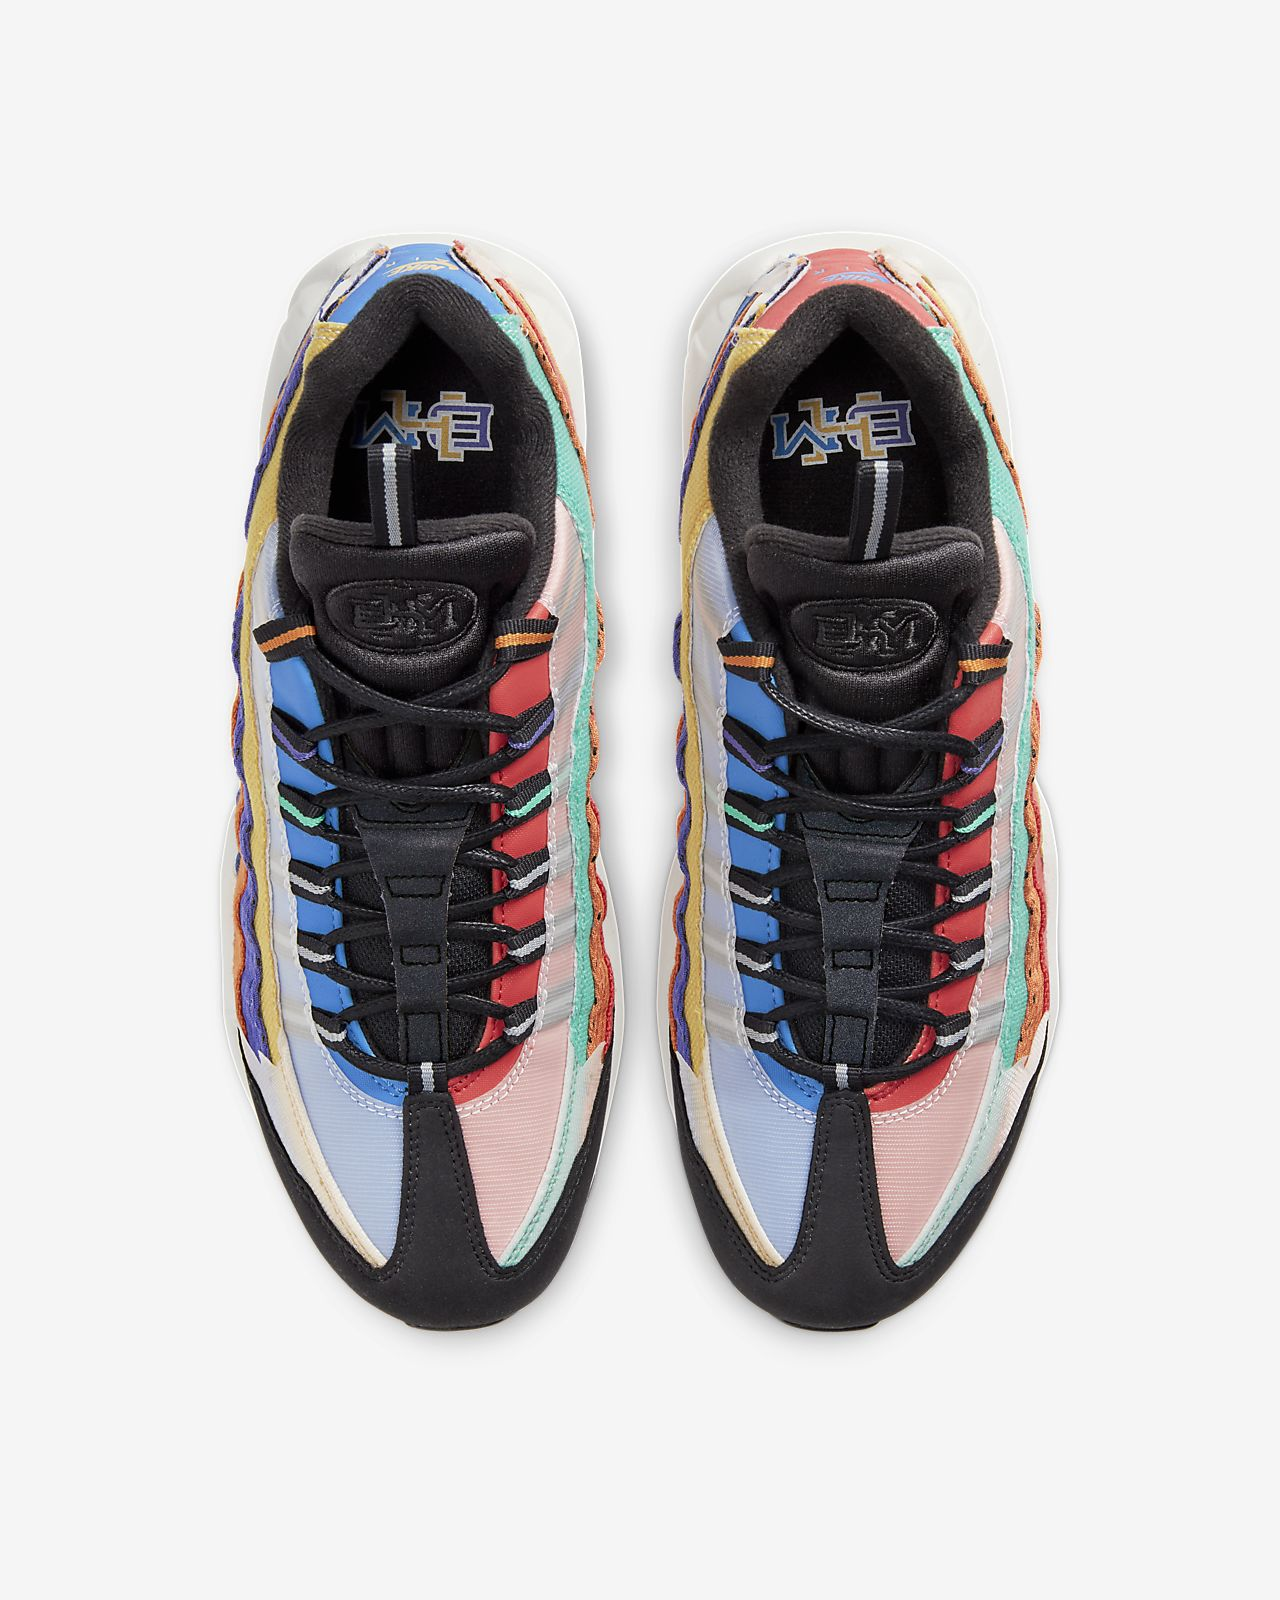 Nike Air Max 95 Black History Month Men's Shoe